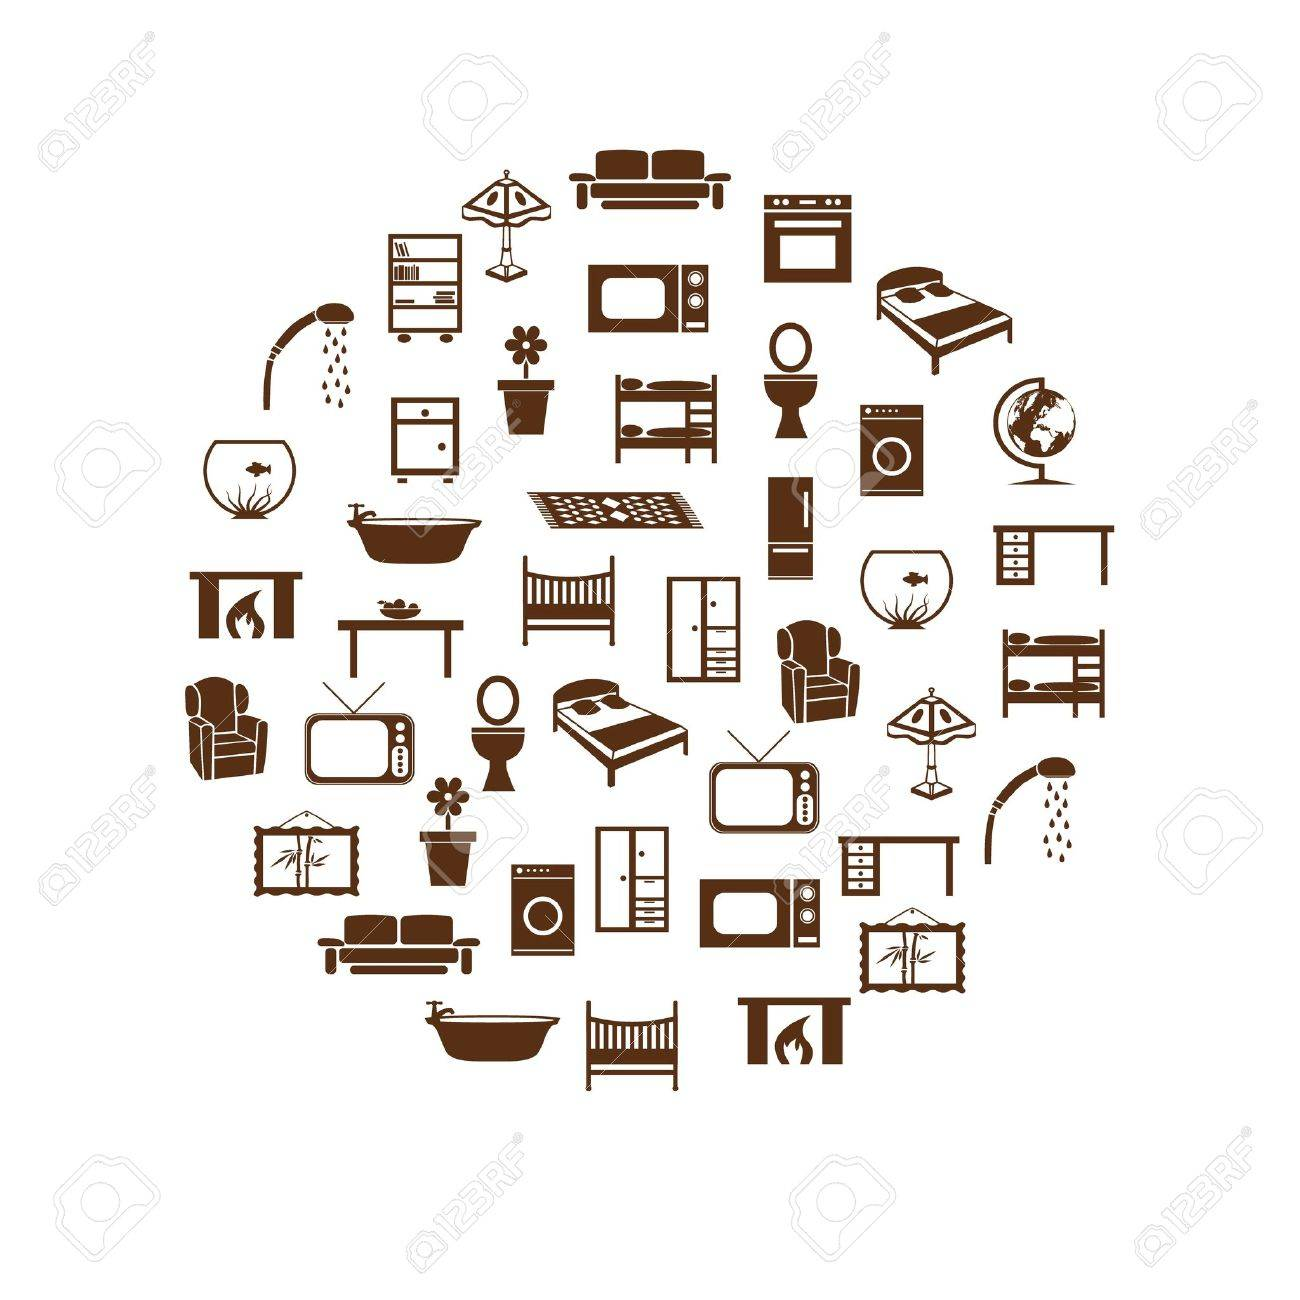 home equipment icons in circle - 17211679